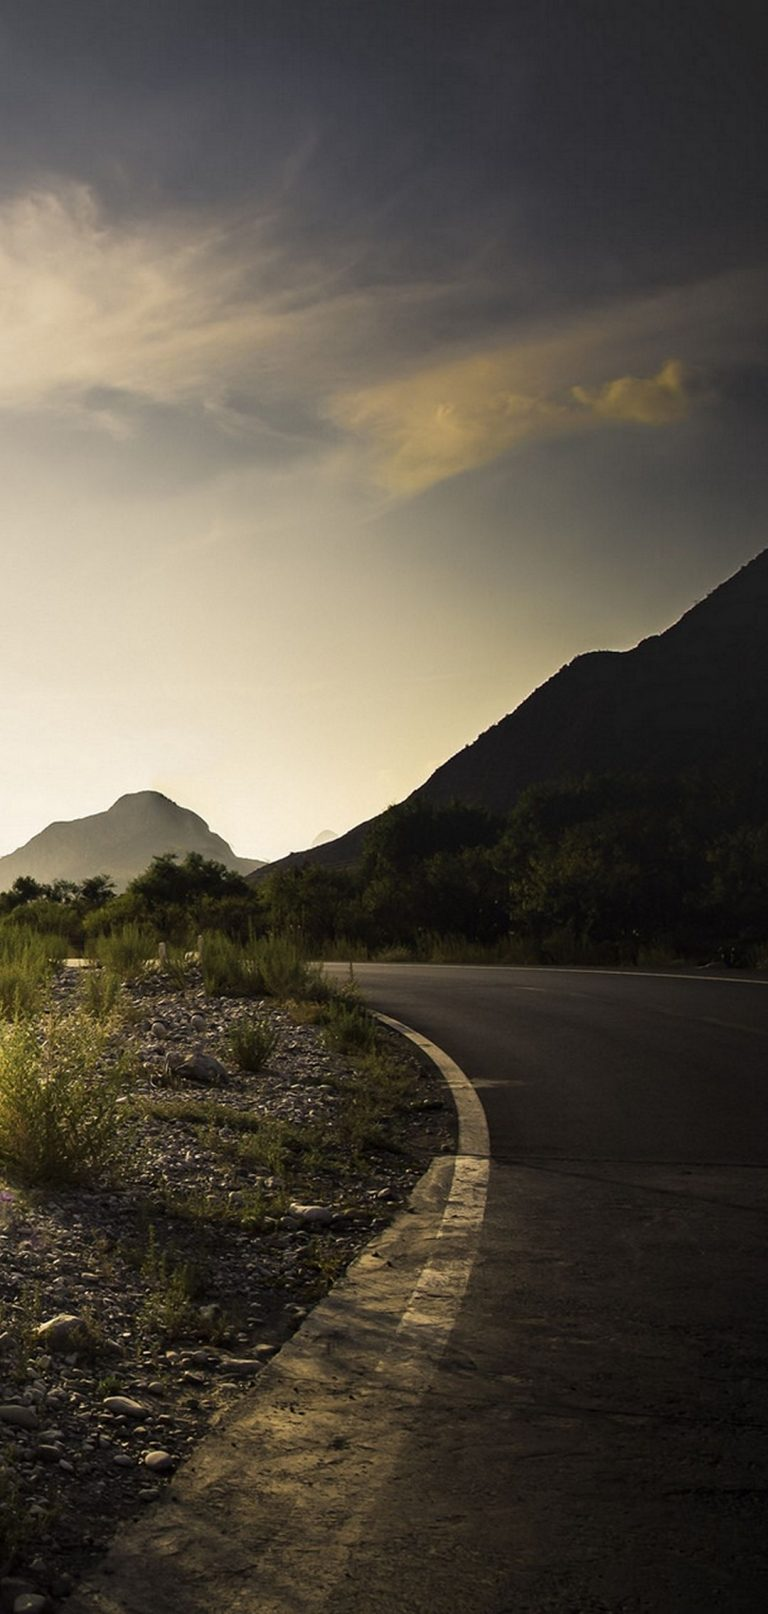 Road Grass Counting Dawn Mountains 1080x2270 768x1614